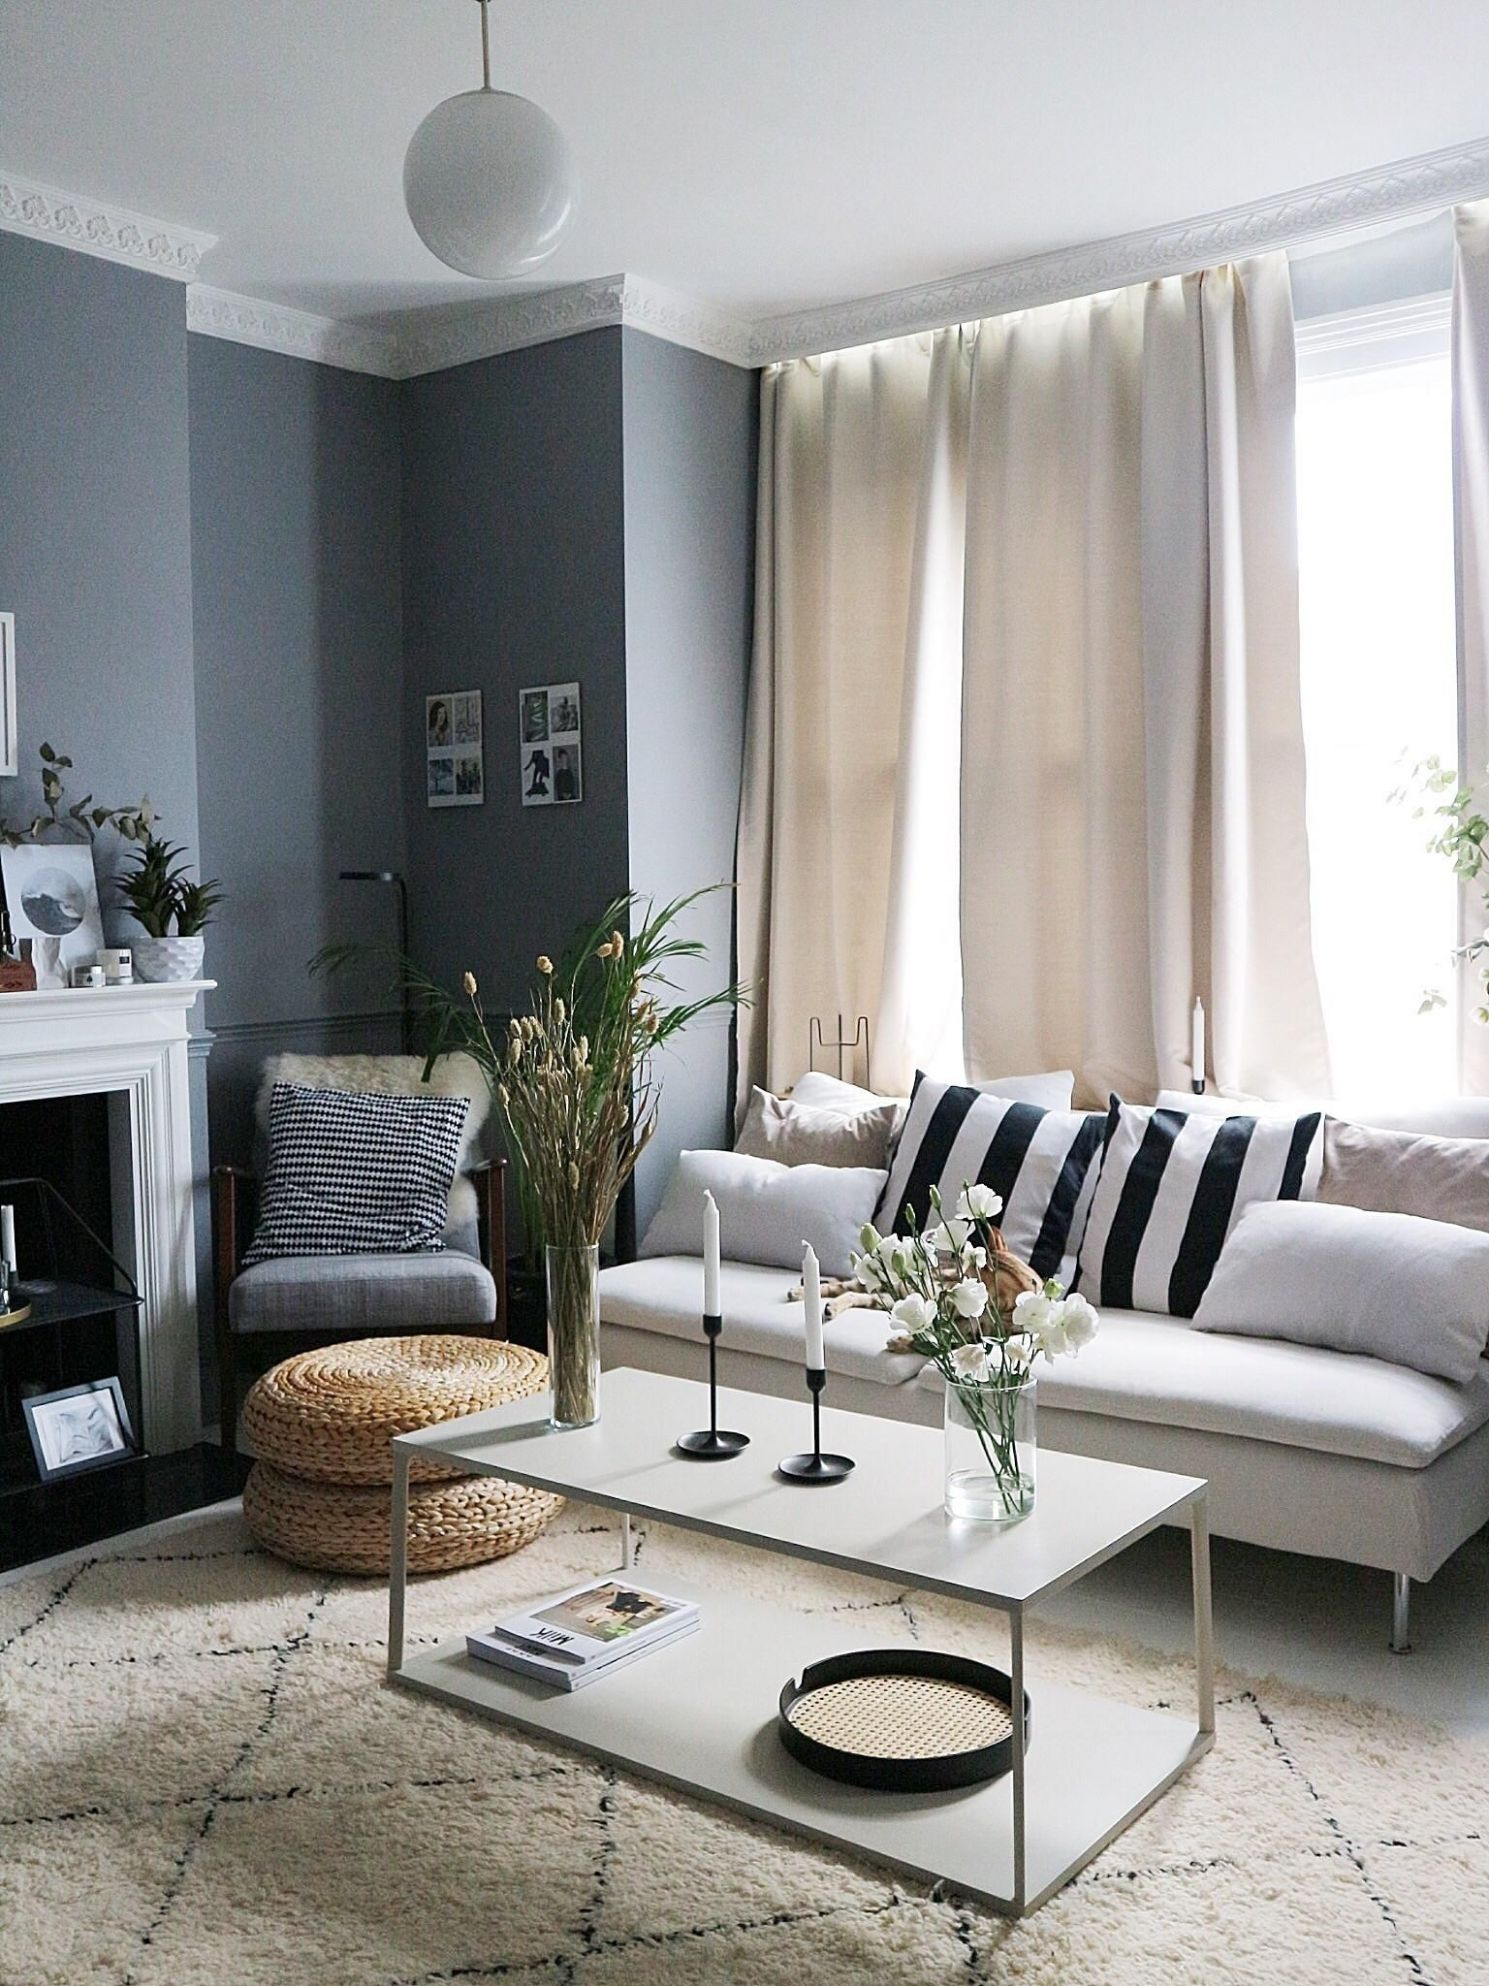 Living Room Decorating Ideas Victorian House in 11 | London ..